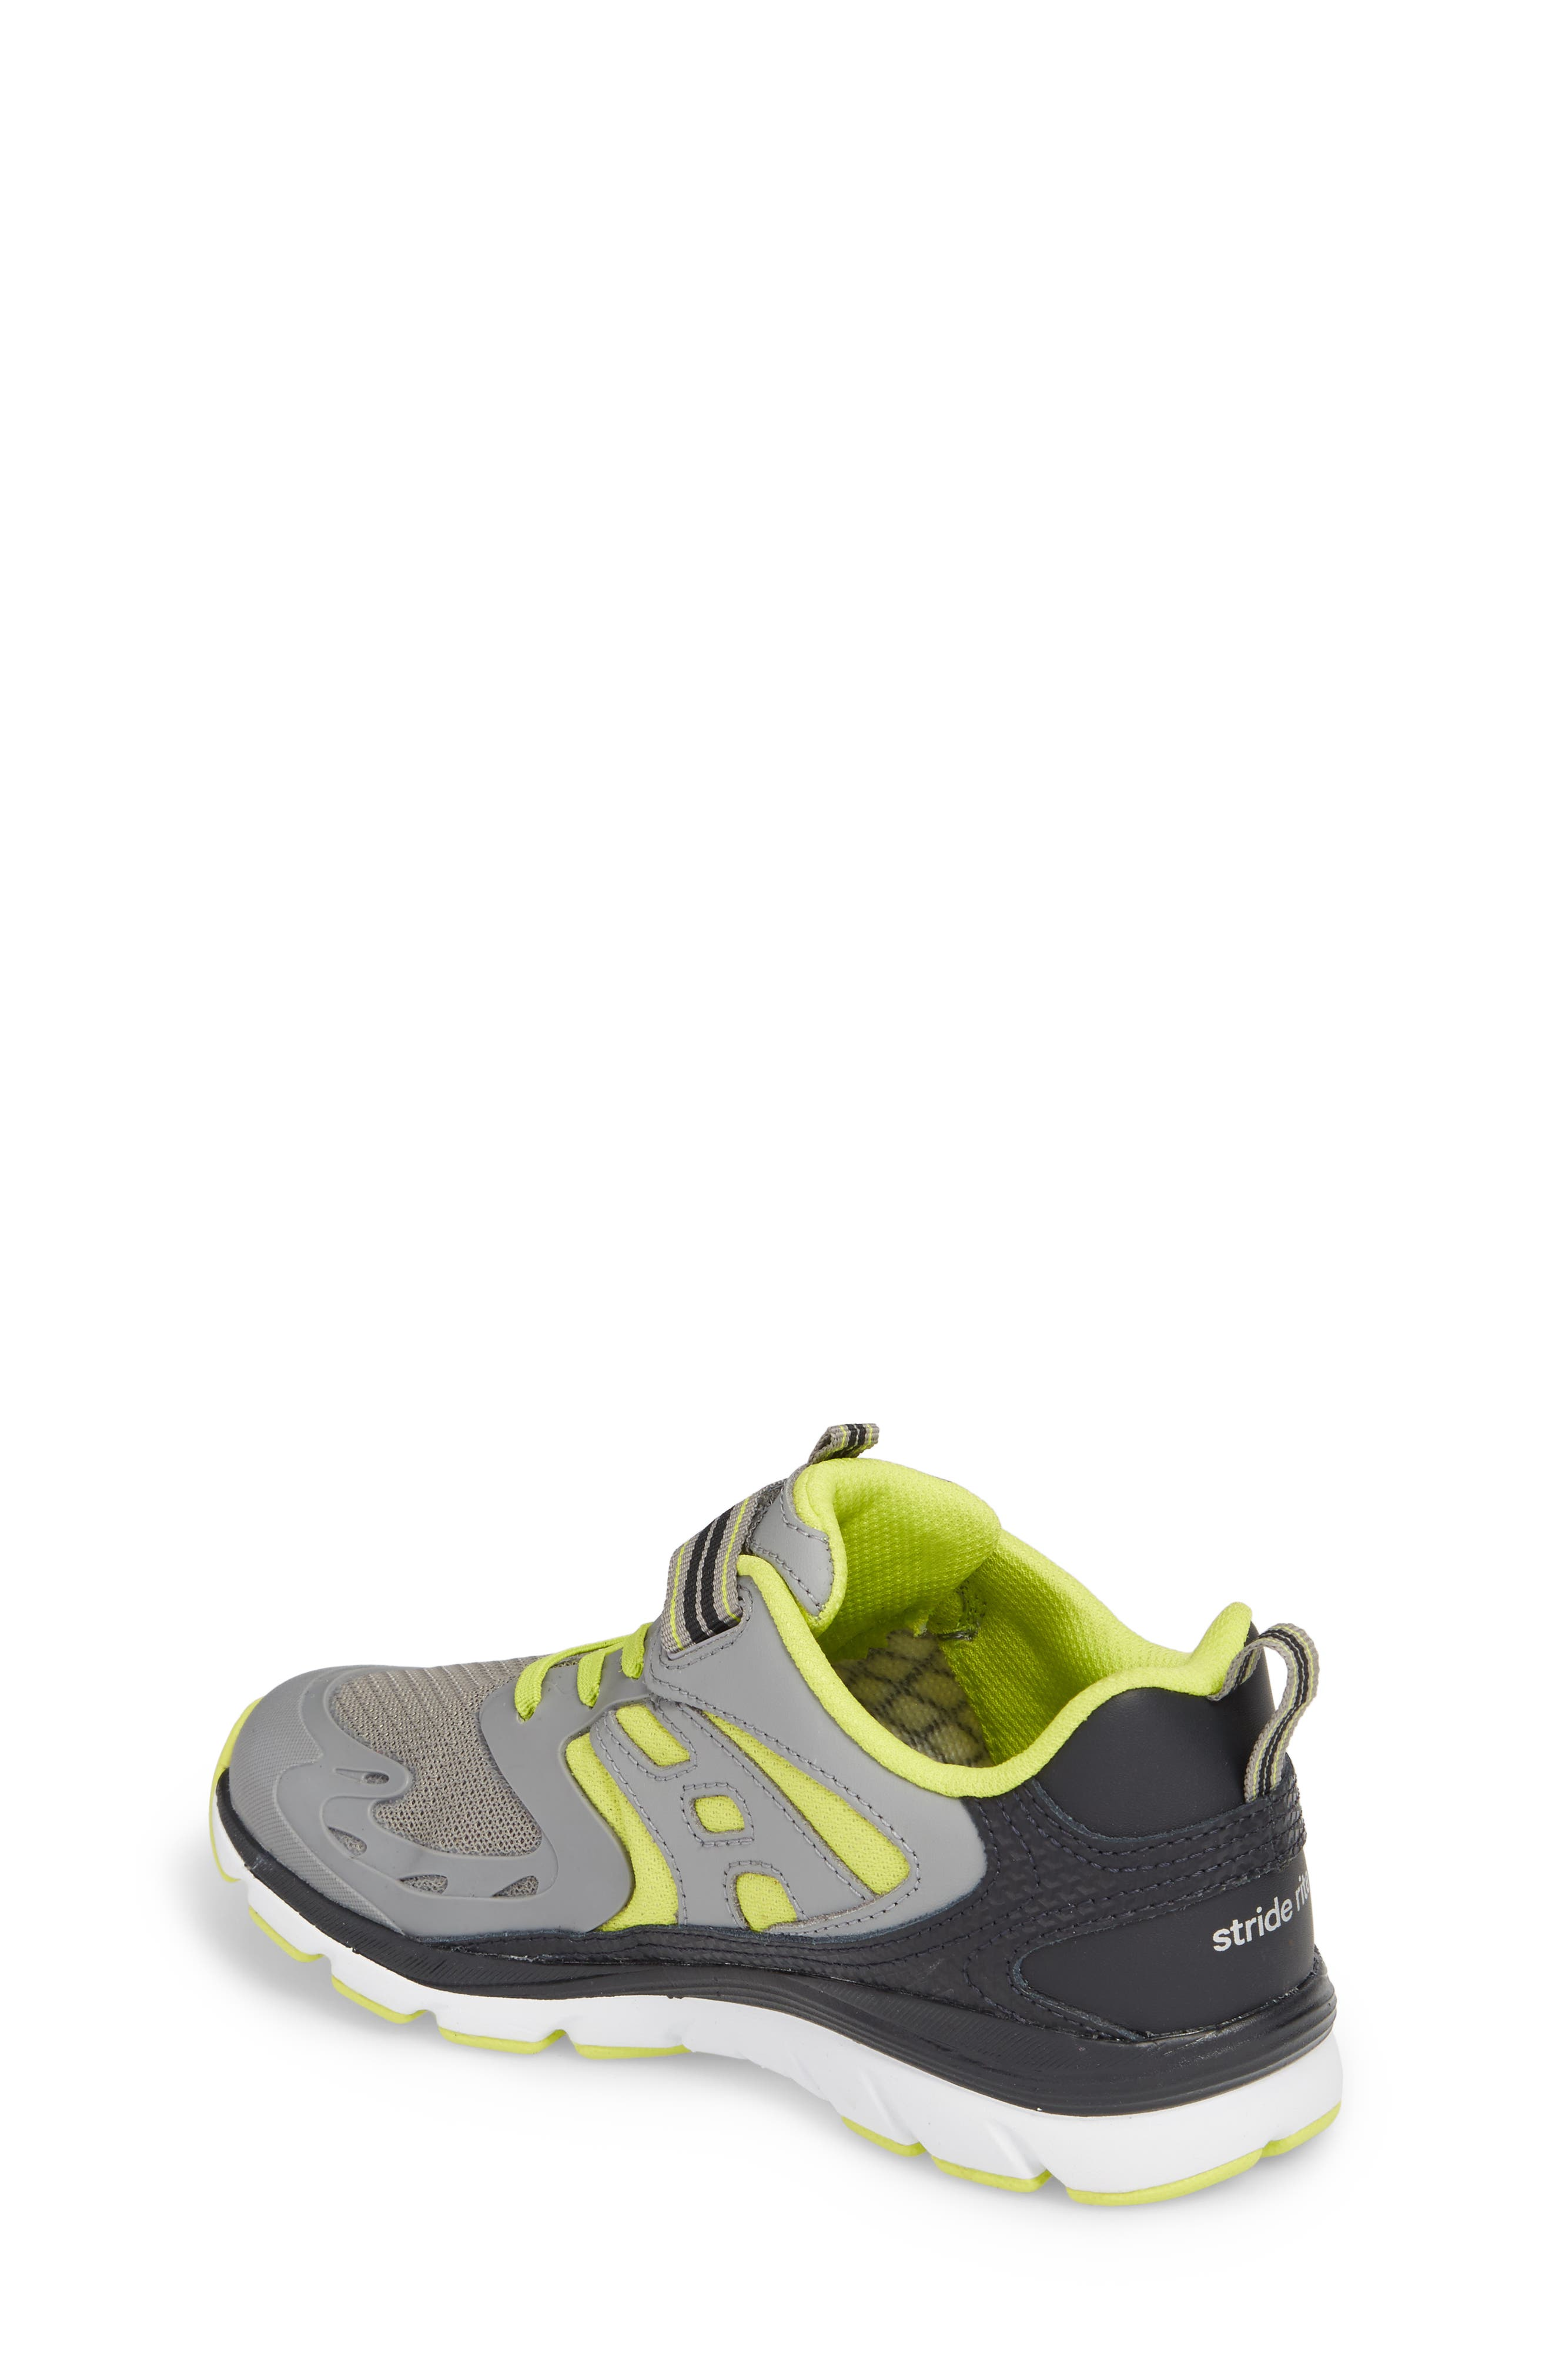 Made 2 Play Breccen Sneaker,                             Alternate thumbnail 2, color,                             Grey/ Lime Leather/ Textile